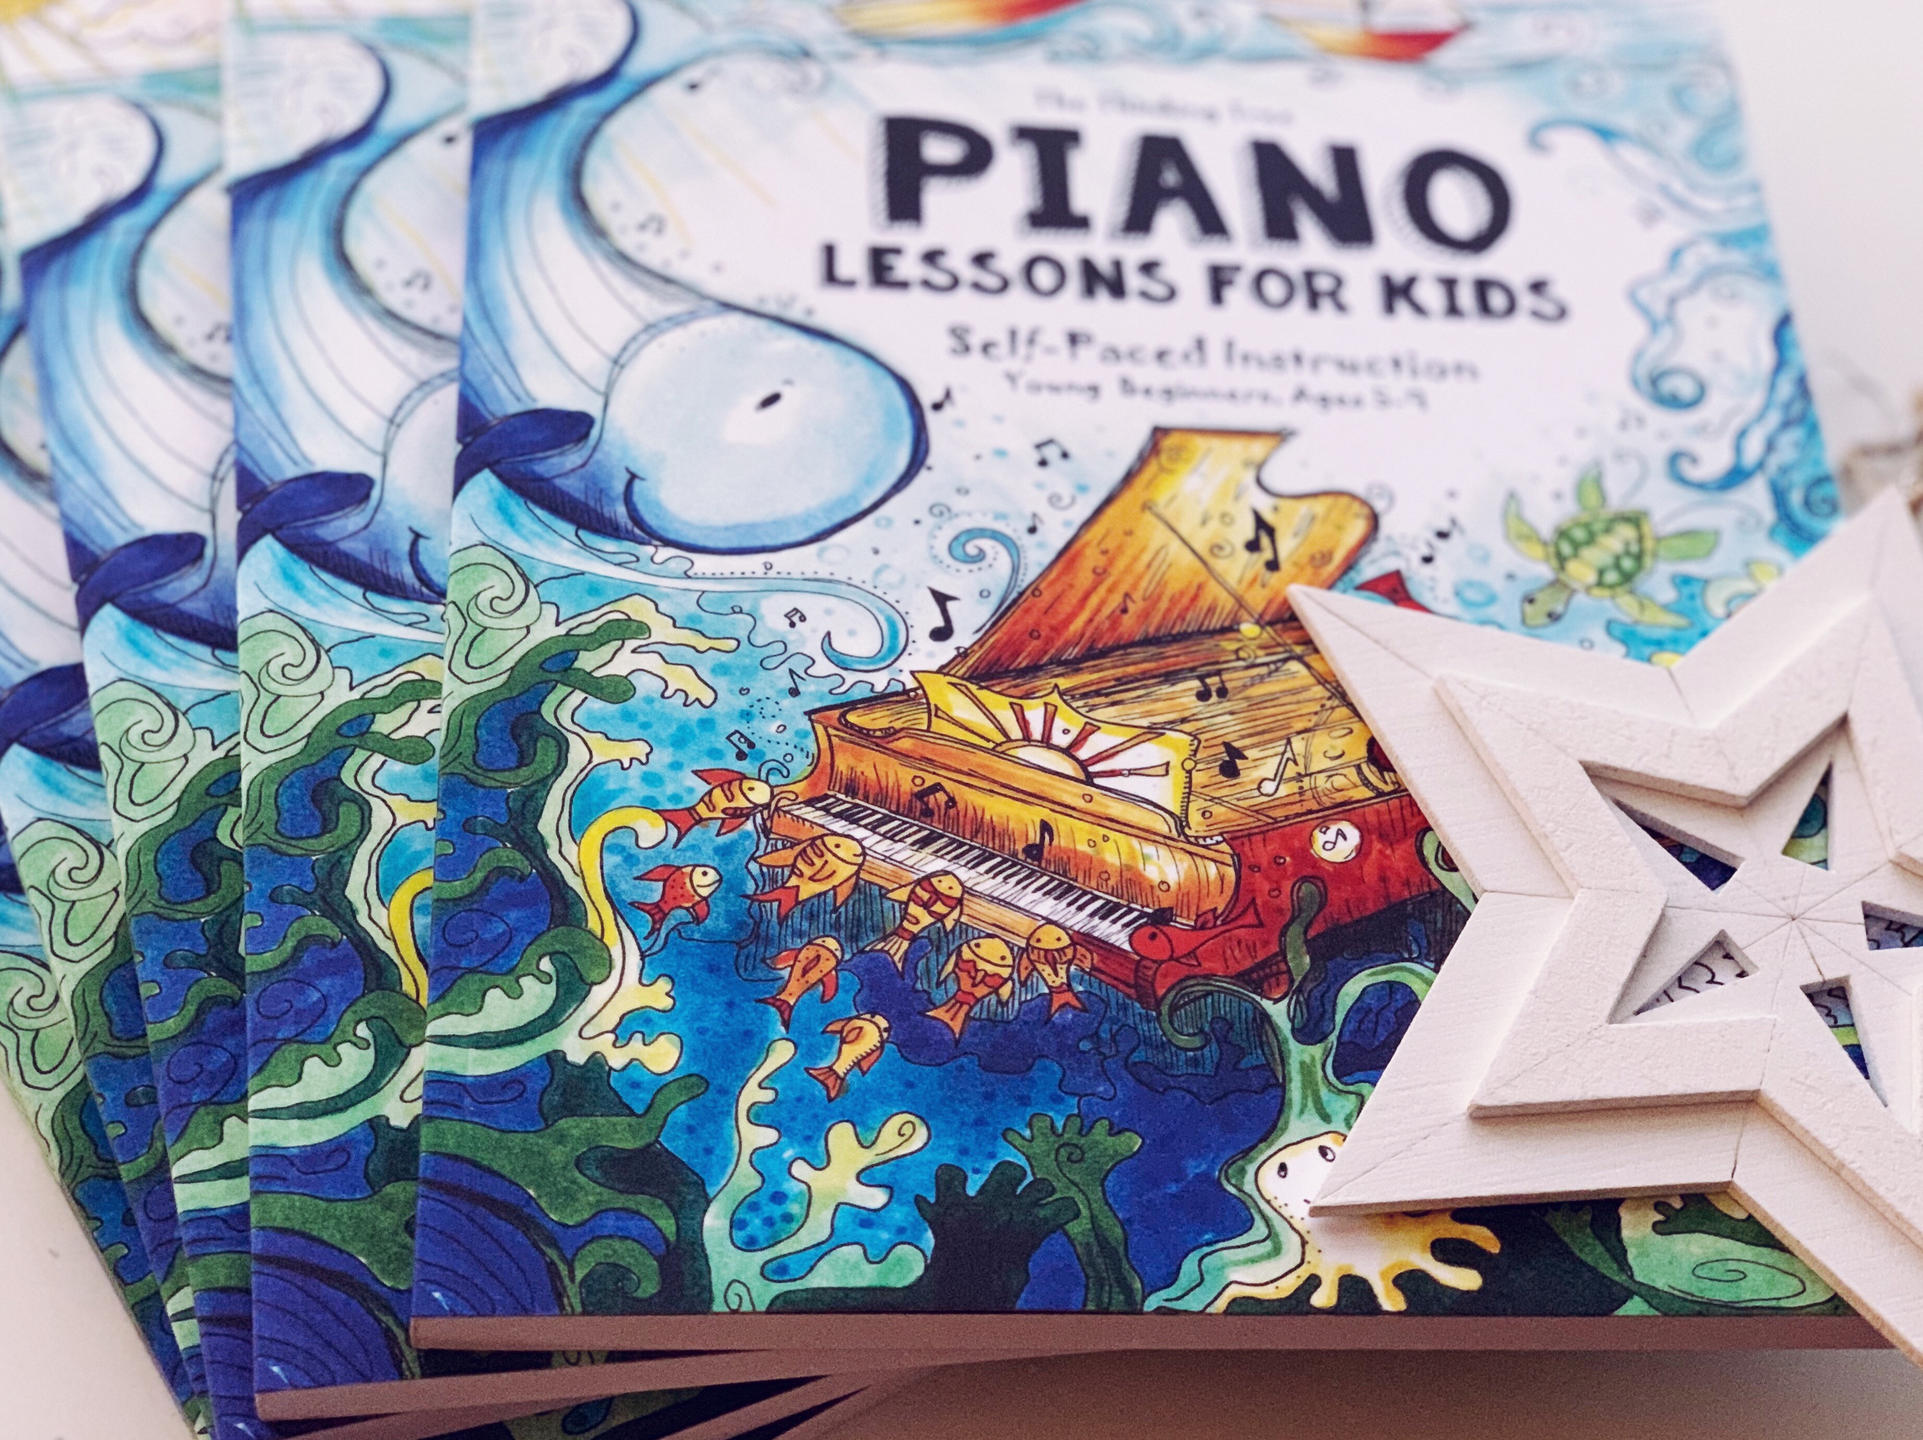 Piano Lessons for Kids Book